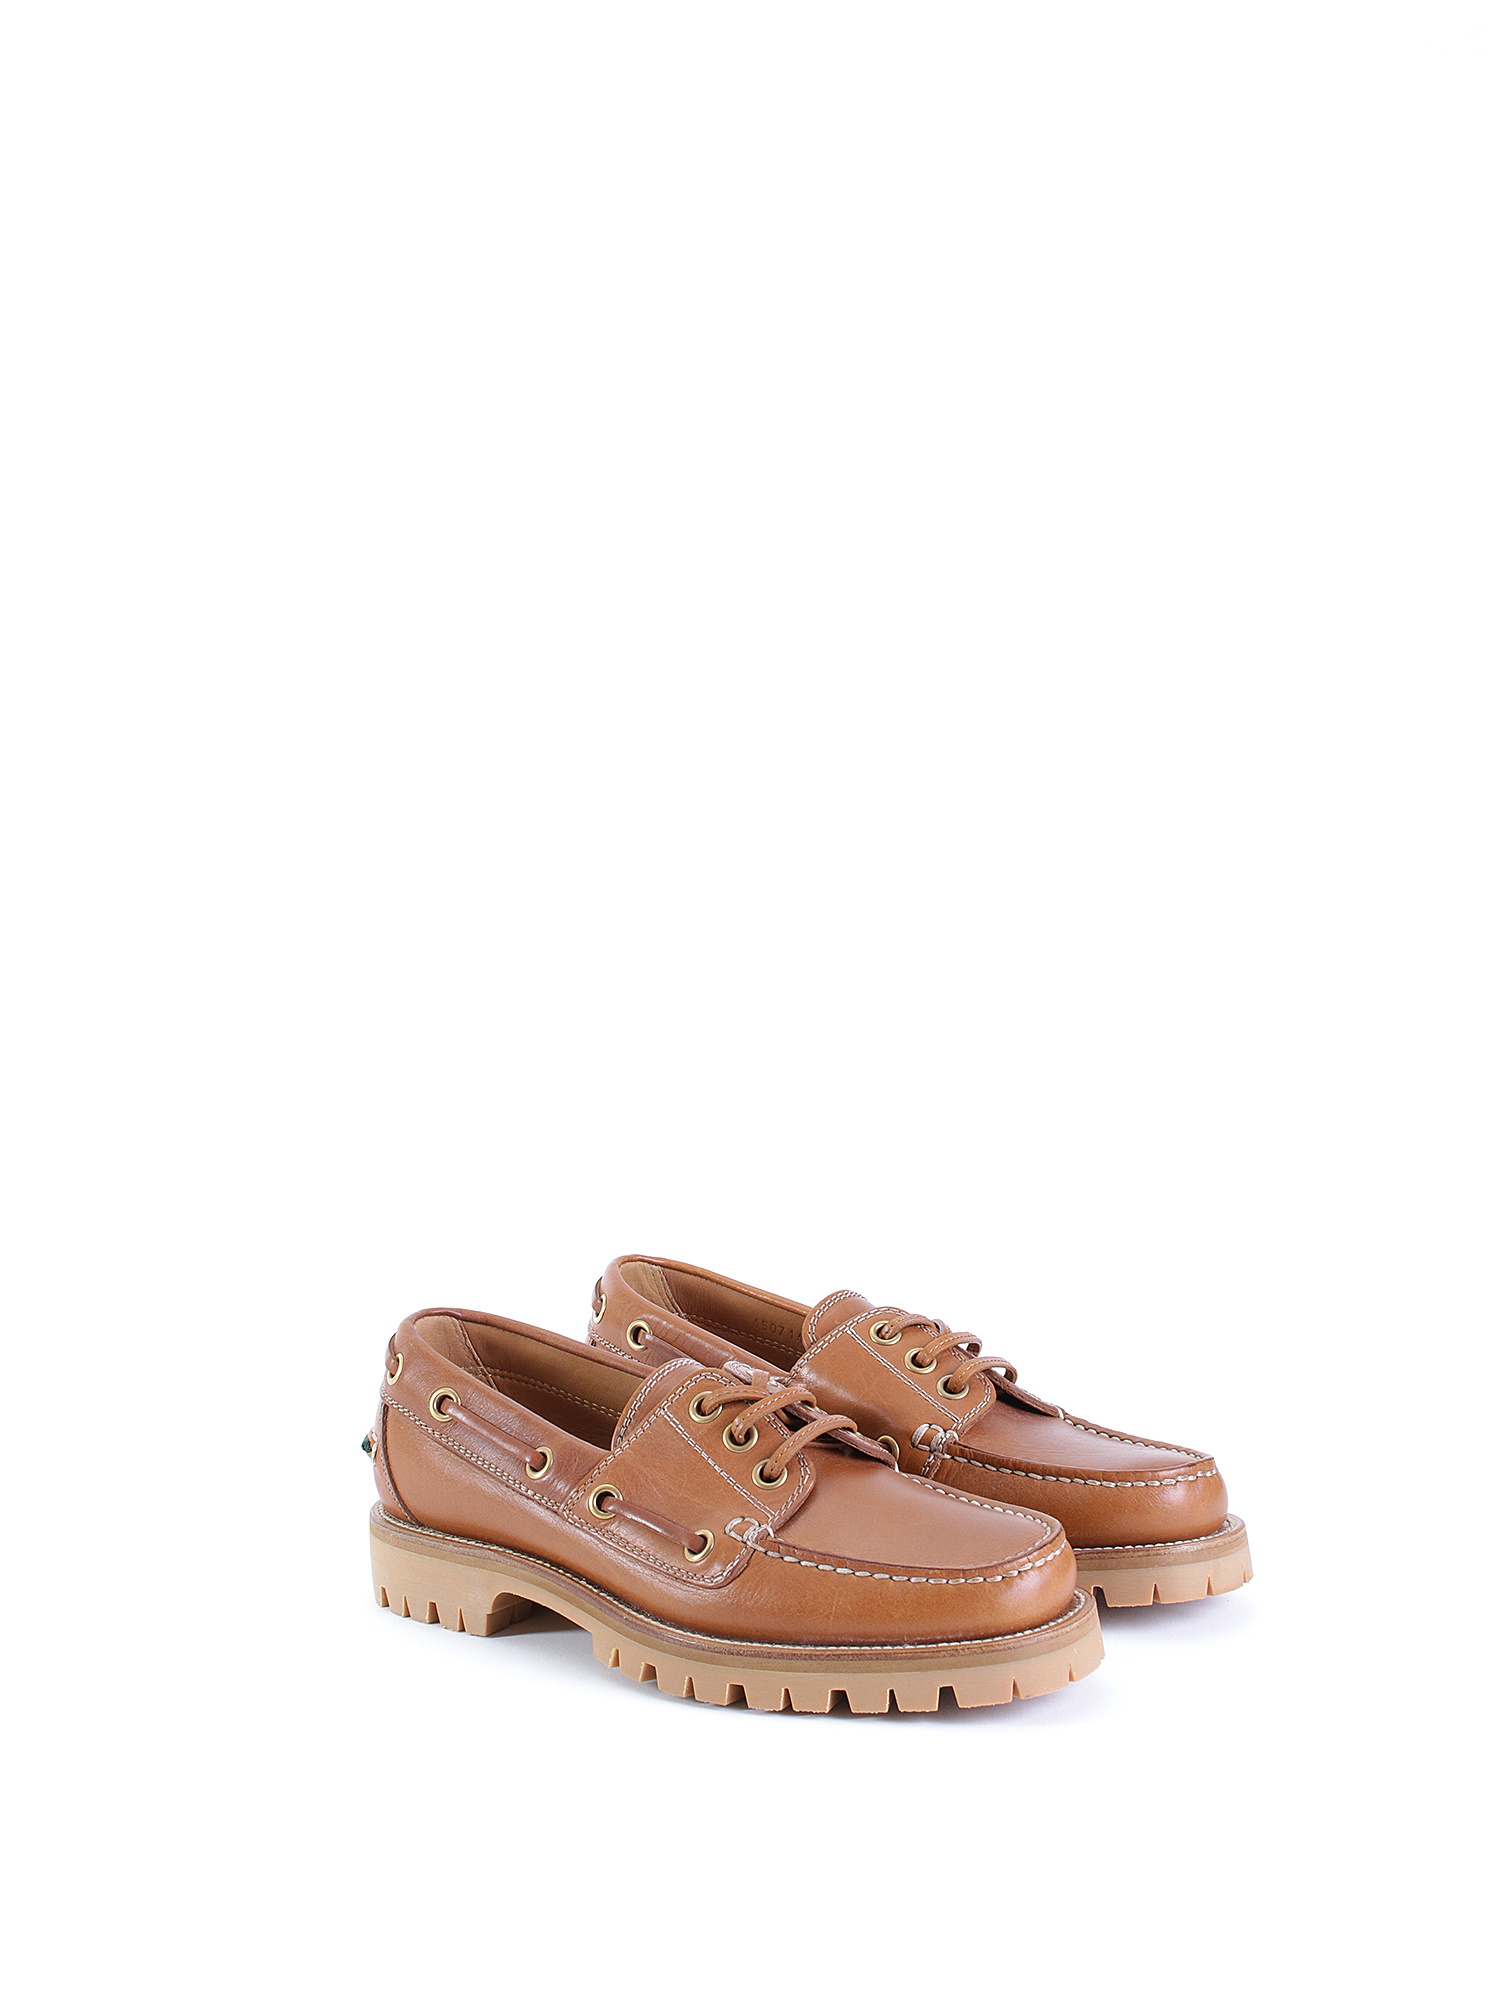 Gucci Leather Boat Shoes | RUSE